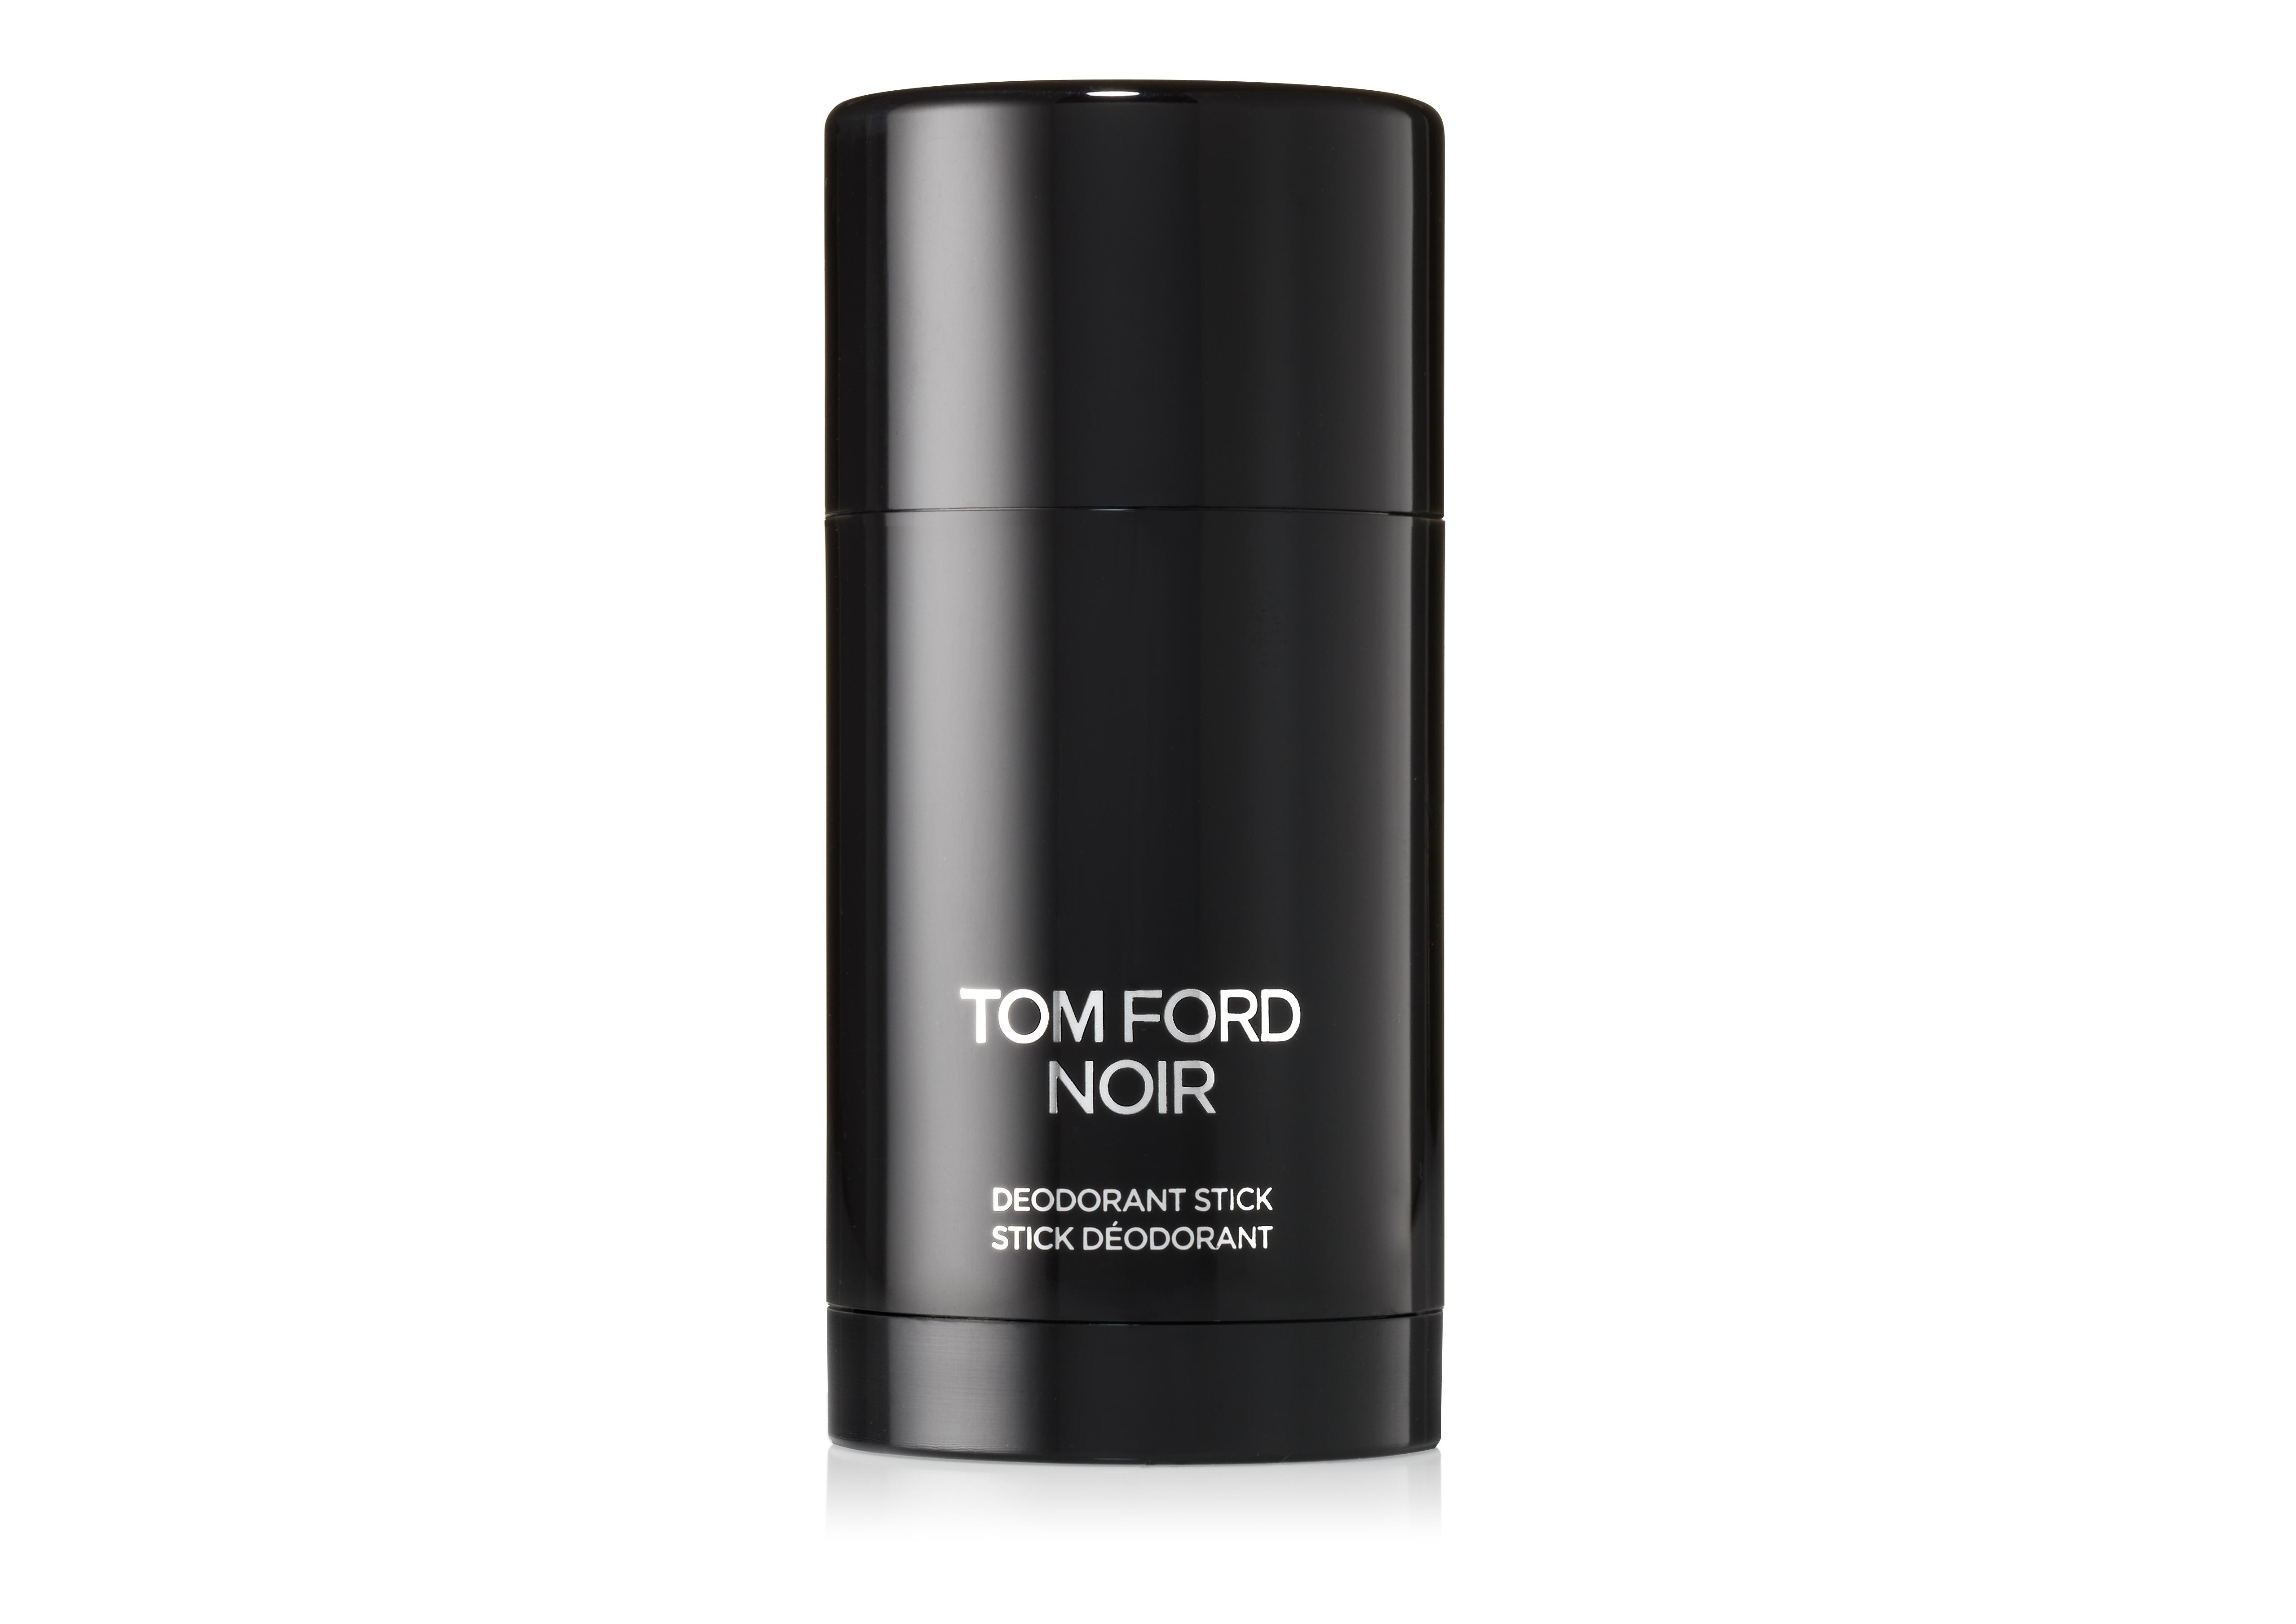 Tom Ford Noir Deodorant Stick A thumbnail